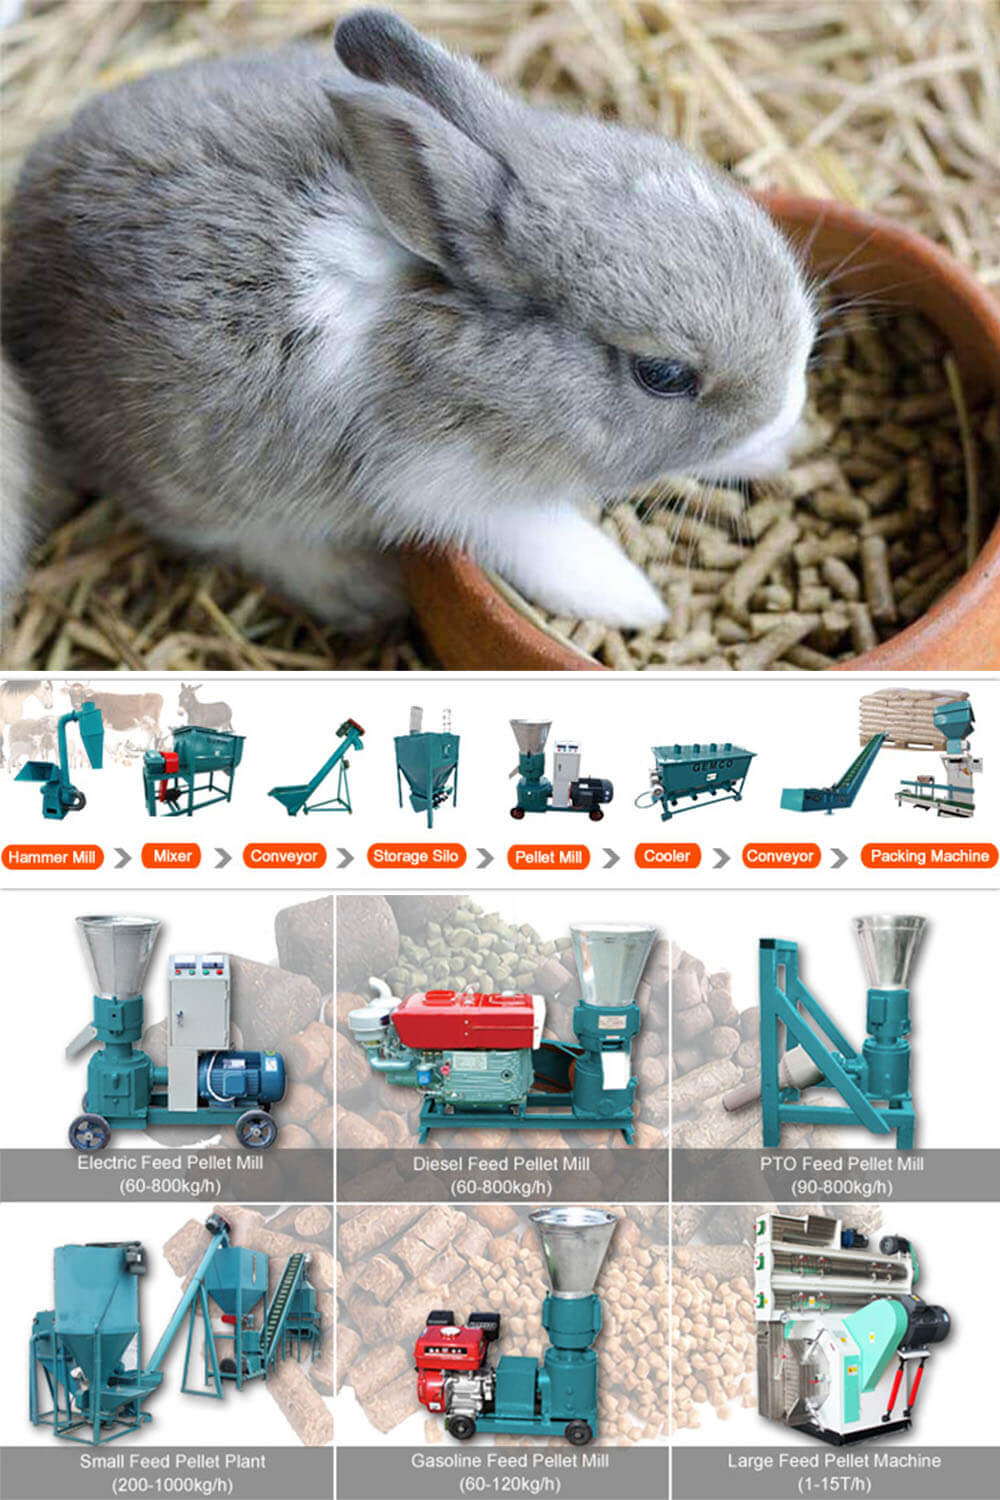 Feed Pellet Mill Machine Can Make Feed Pellets For Rabbit